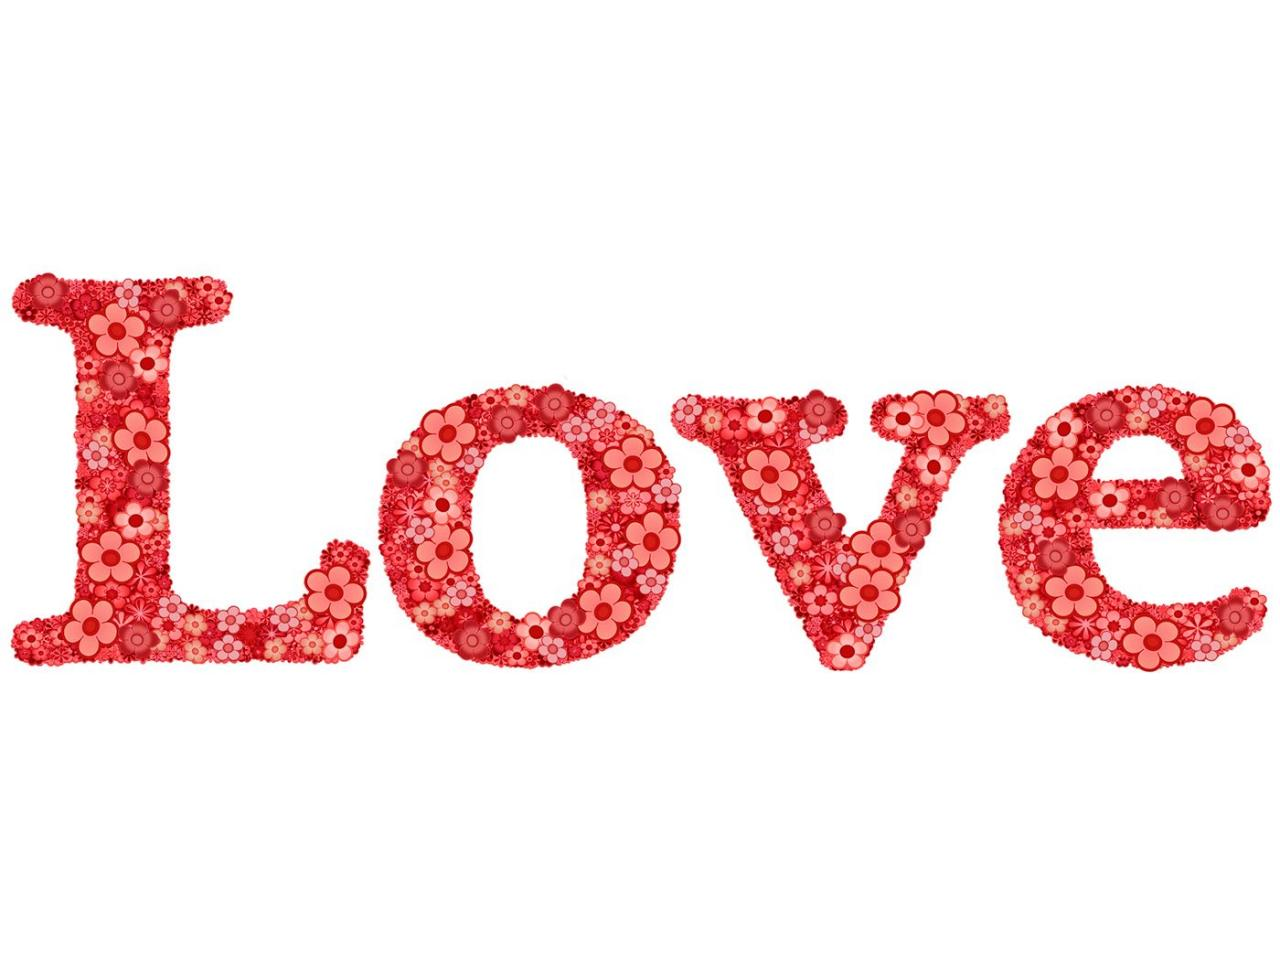 Love Word Hd Wallpaper Wallpaper Wallpapermine